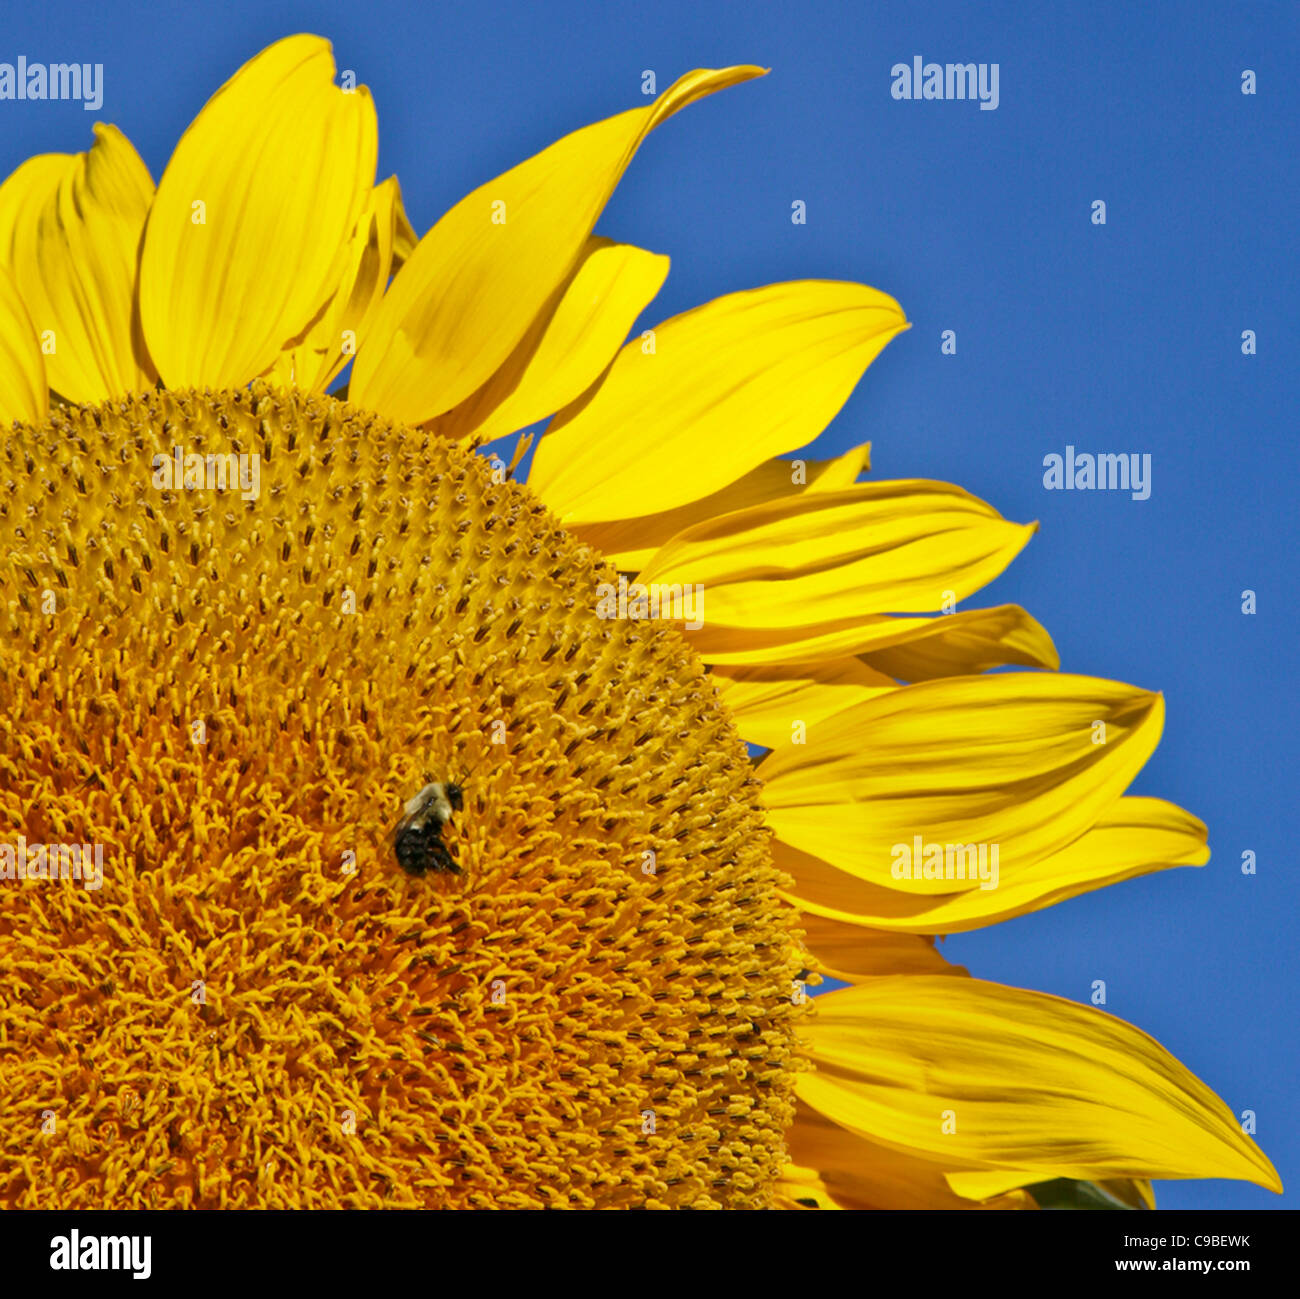 close up abstract of a honey bee flying onto a sunflower, bumblebee in flight, Lancaster County, Pennsylvania, USA, - Stock Image